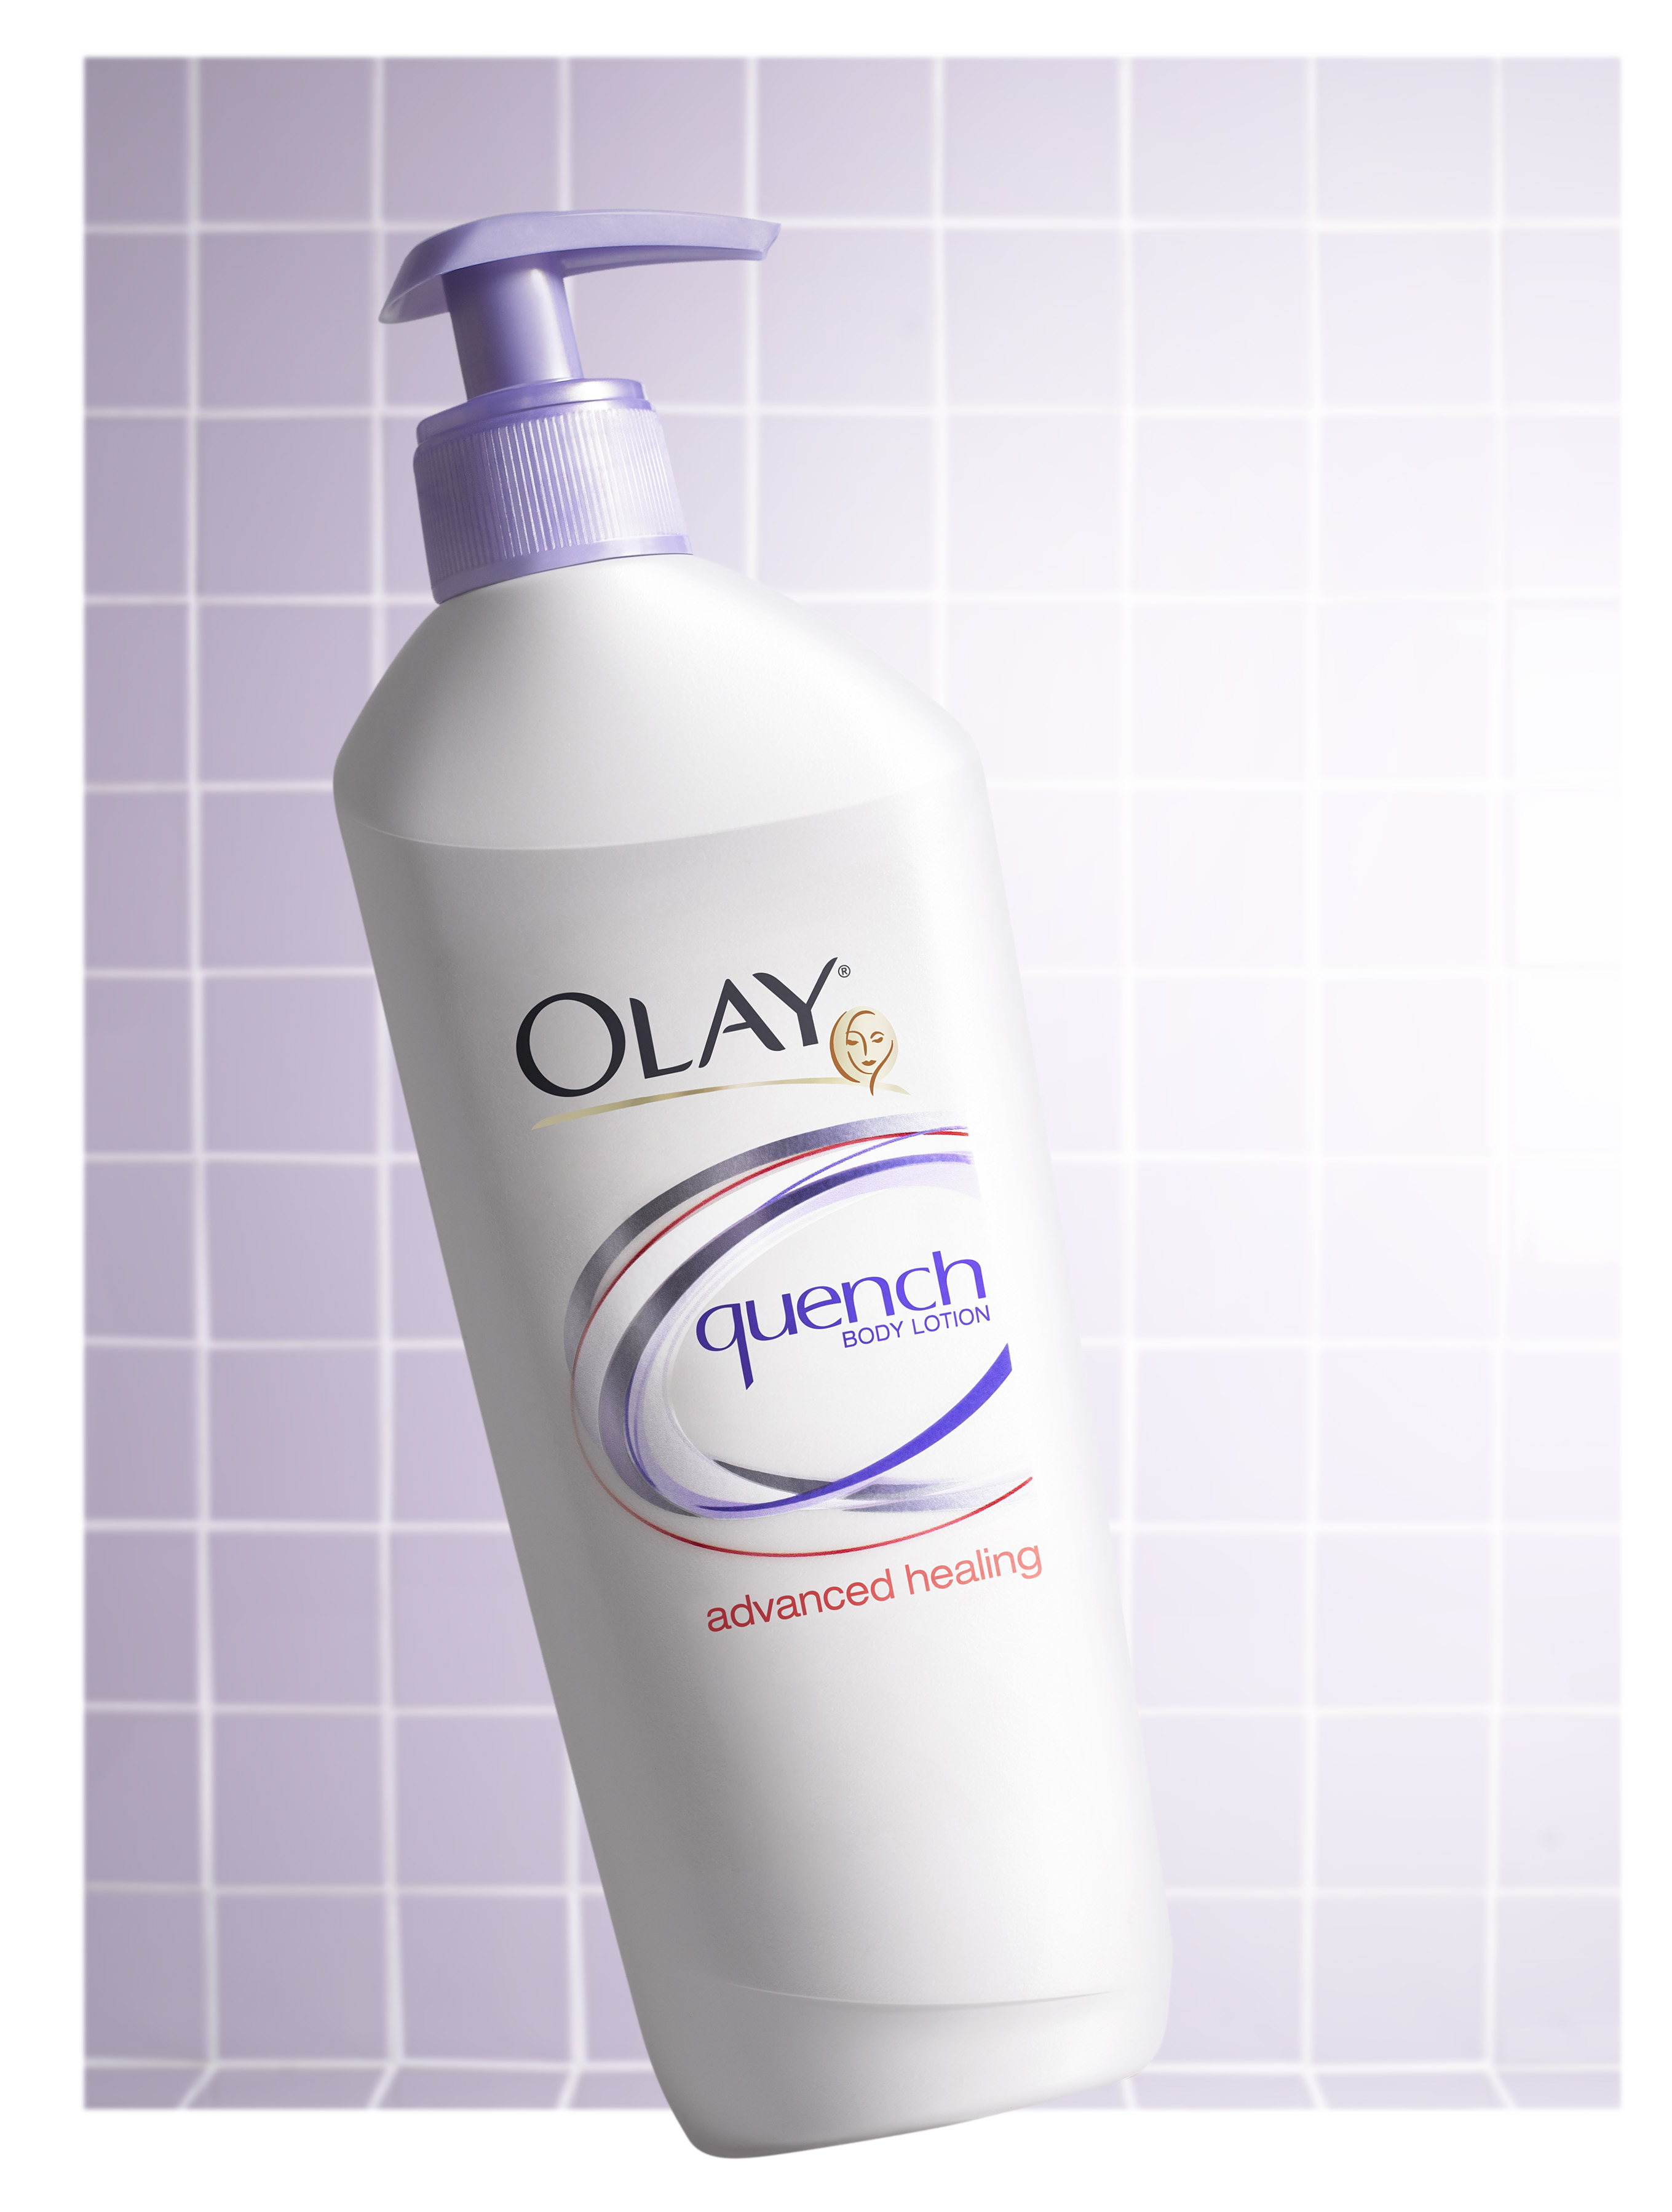 Olay-quench